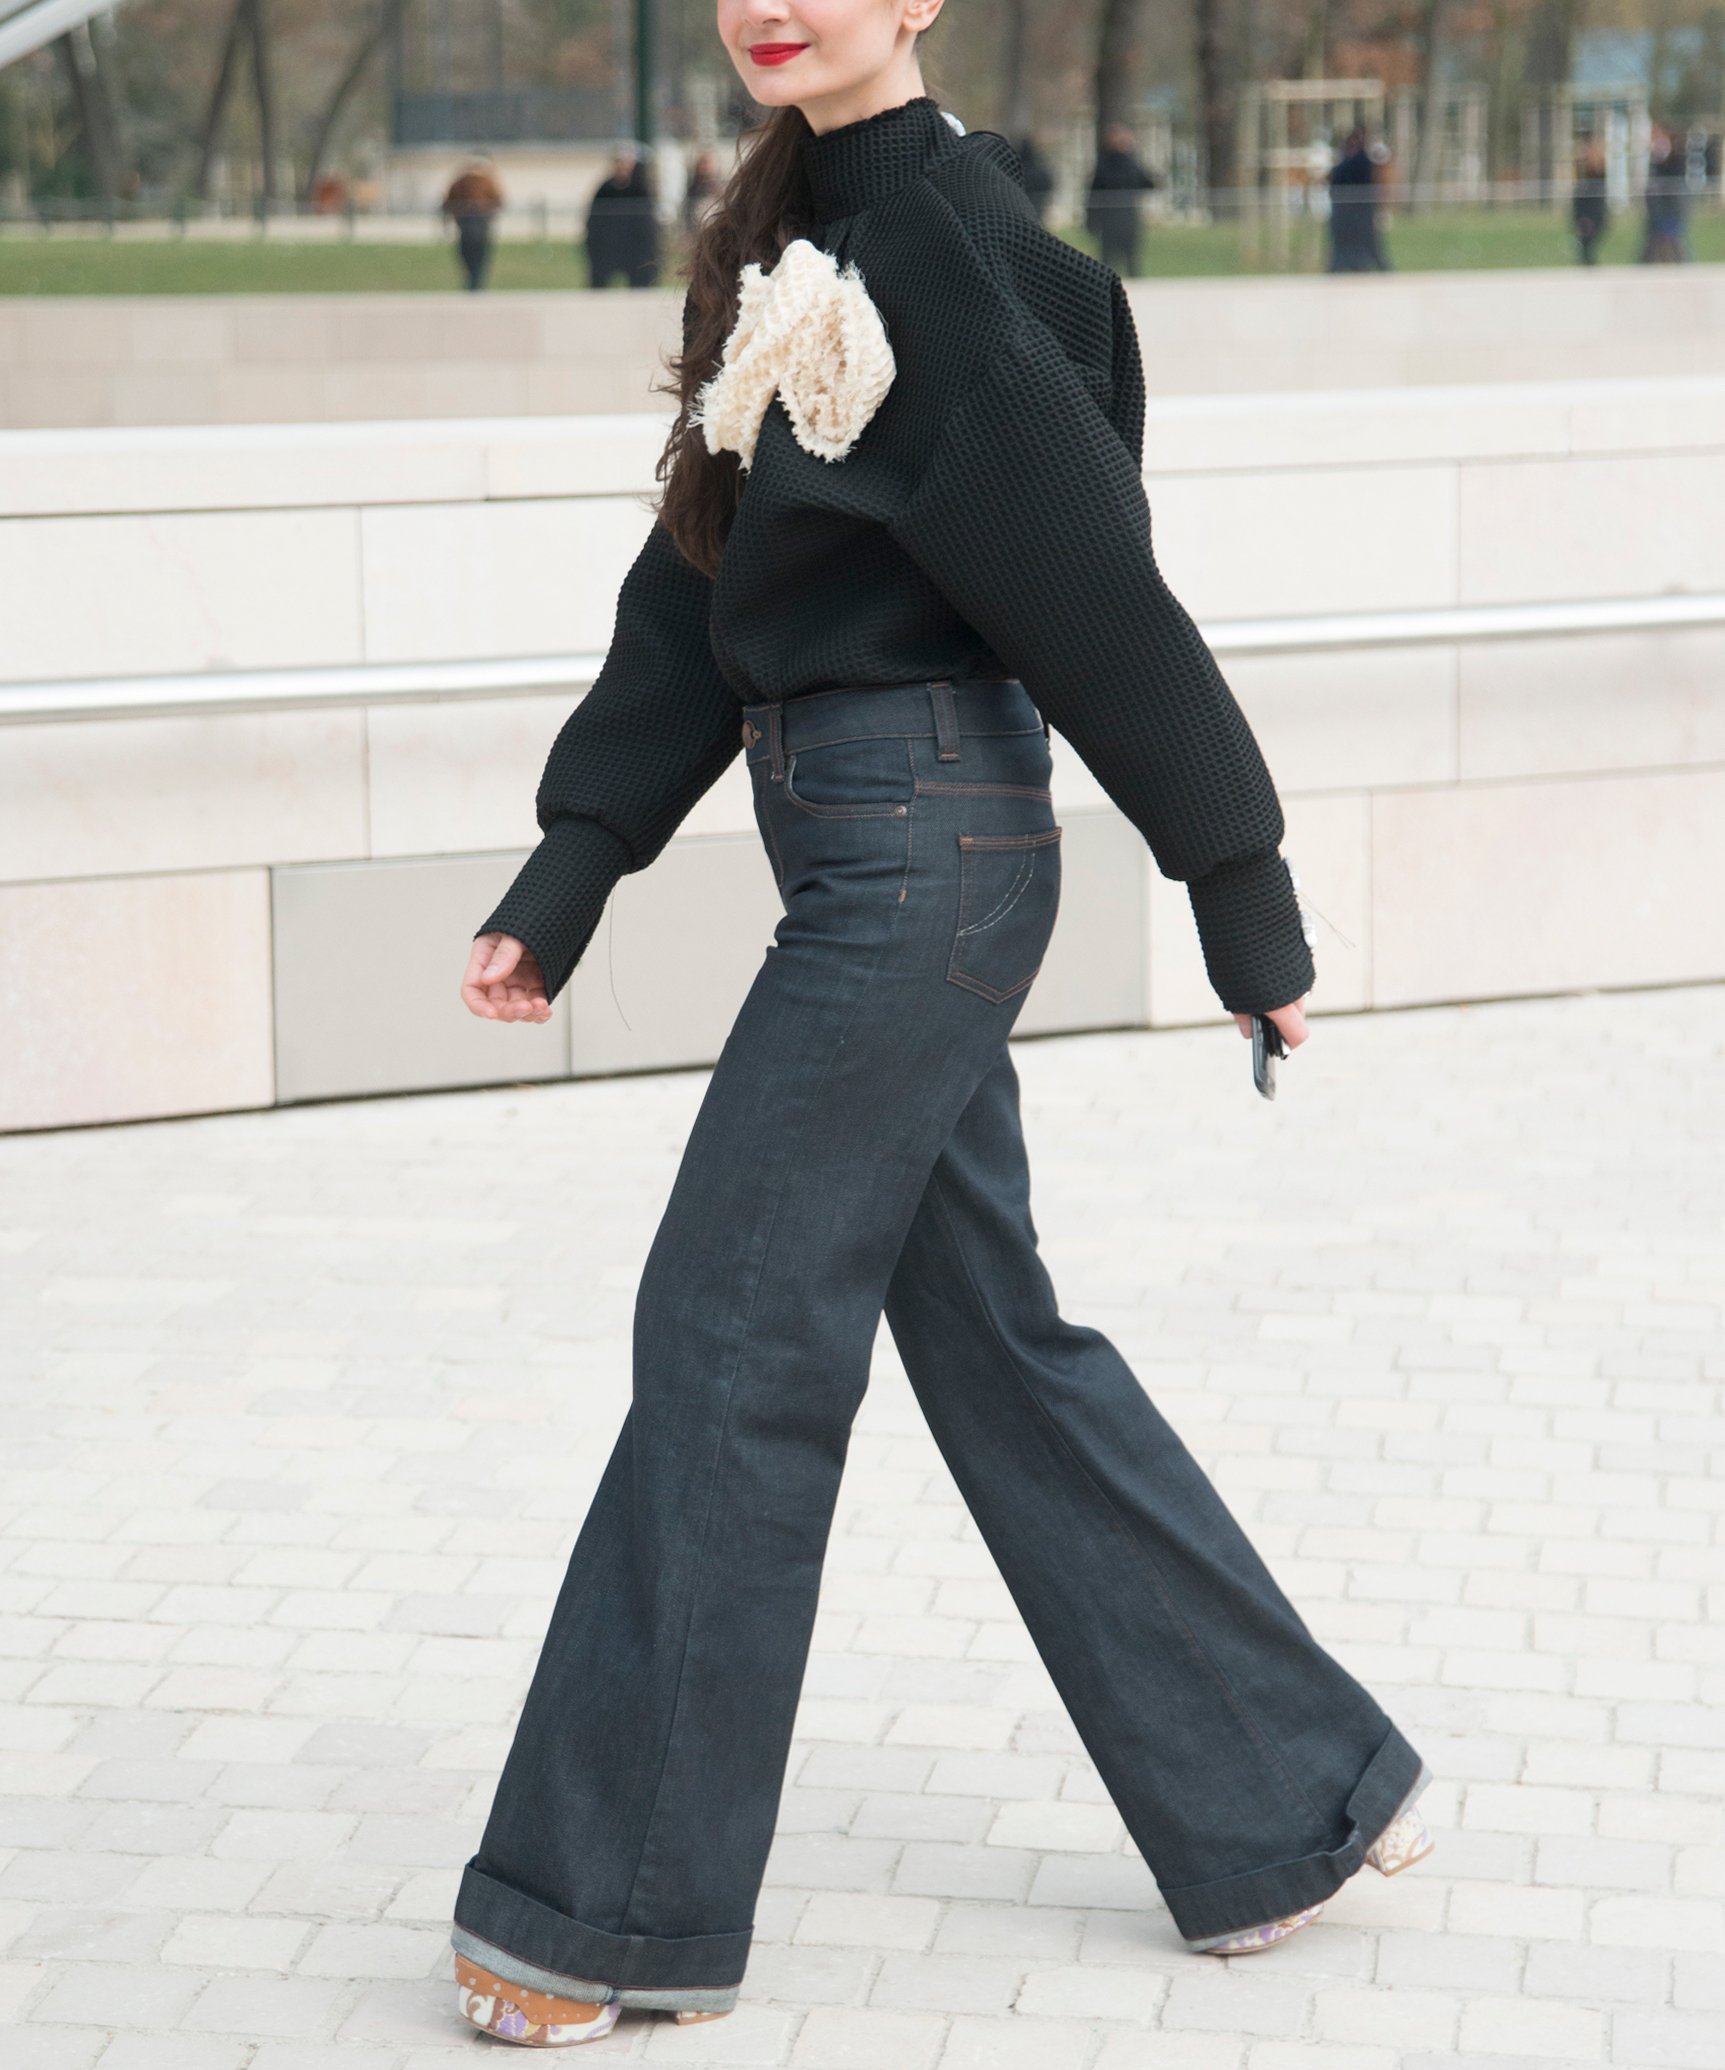 The Best Jeans to Wear to Work